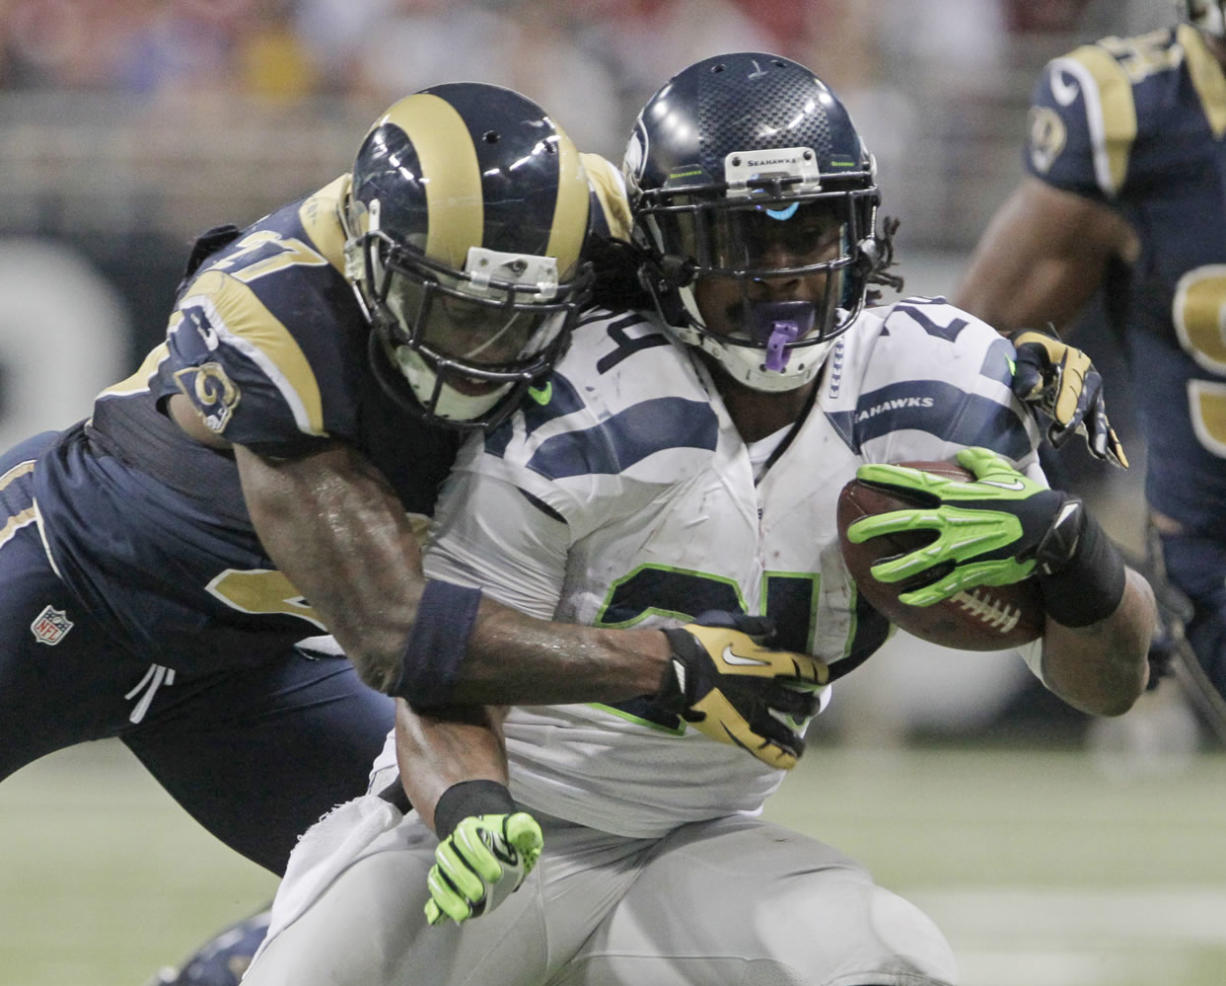 Seattle Seahawks running back Marshawn Lynch is tackled by St. Louis Rams free safety Quintin Mikell during the second half Sunday.